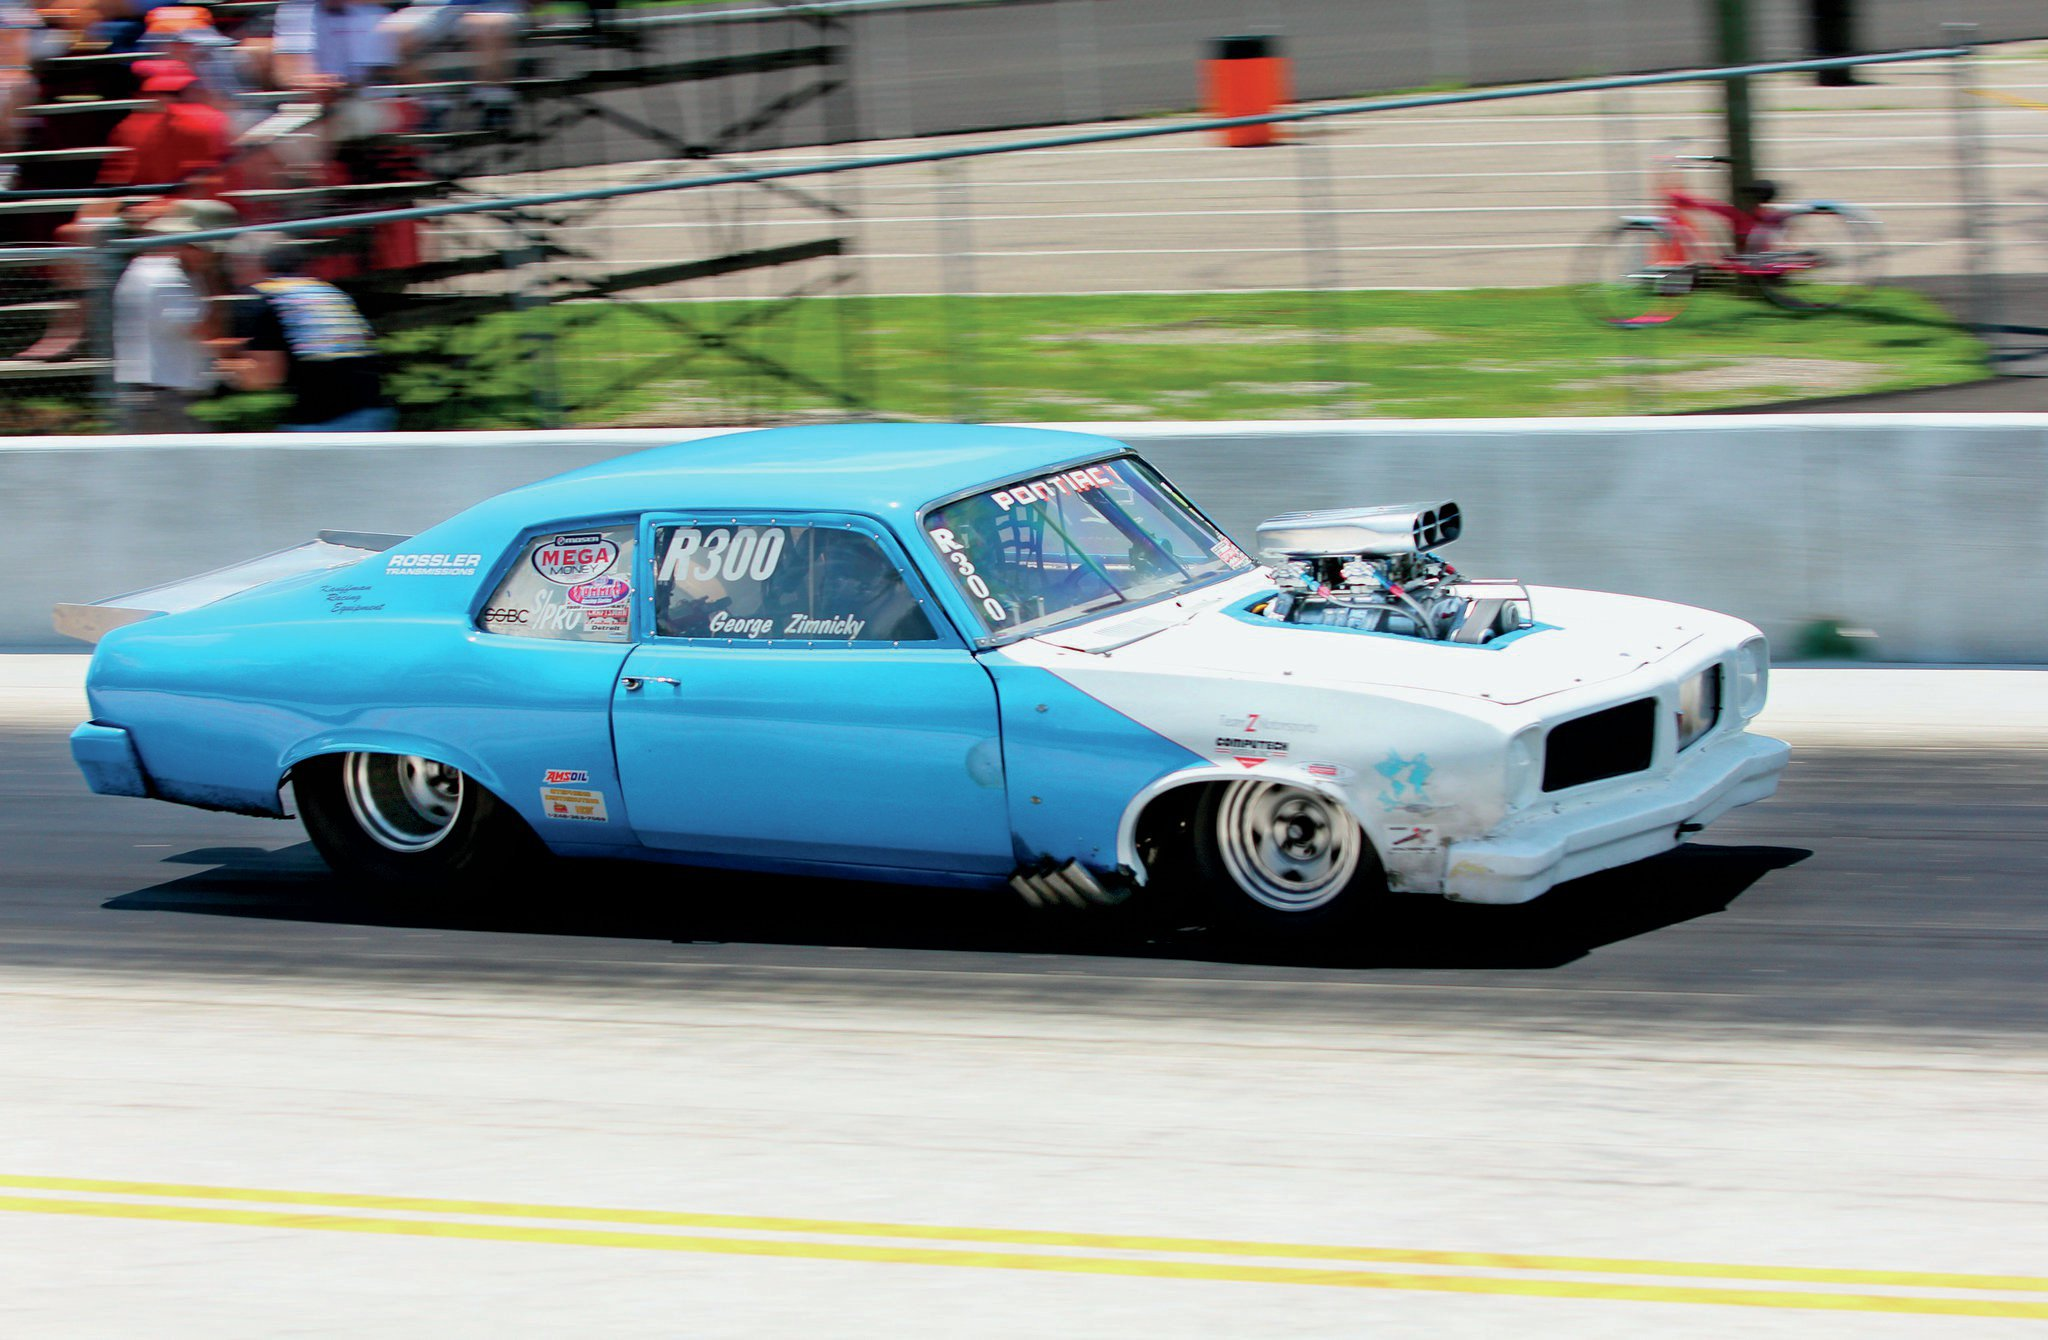 The blown 518ci KRE Pontiac in GTO George Zimnicky's tube-framed '74 GTO shook the ground on every pass. He runs 8.60s at over 153 mph.